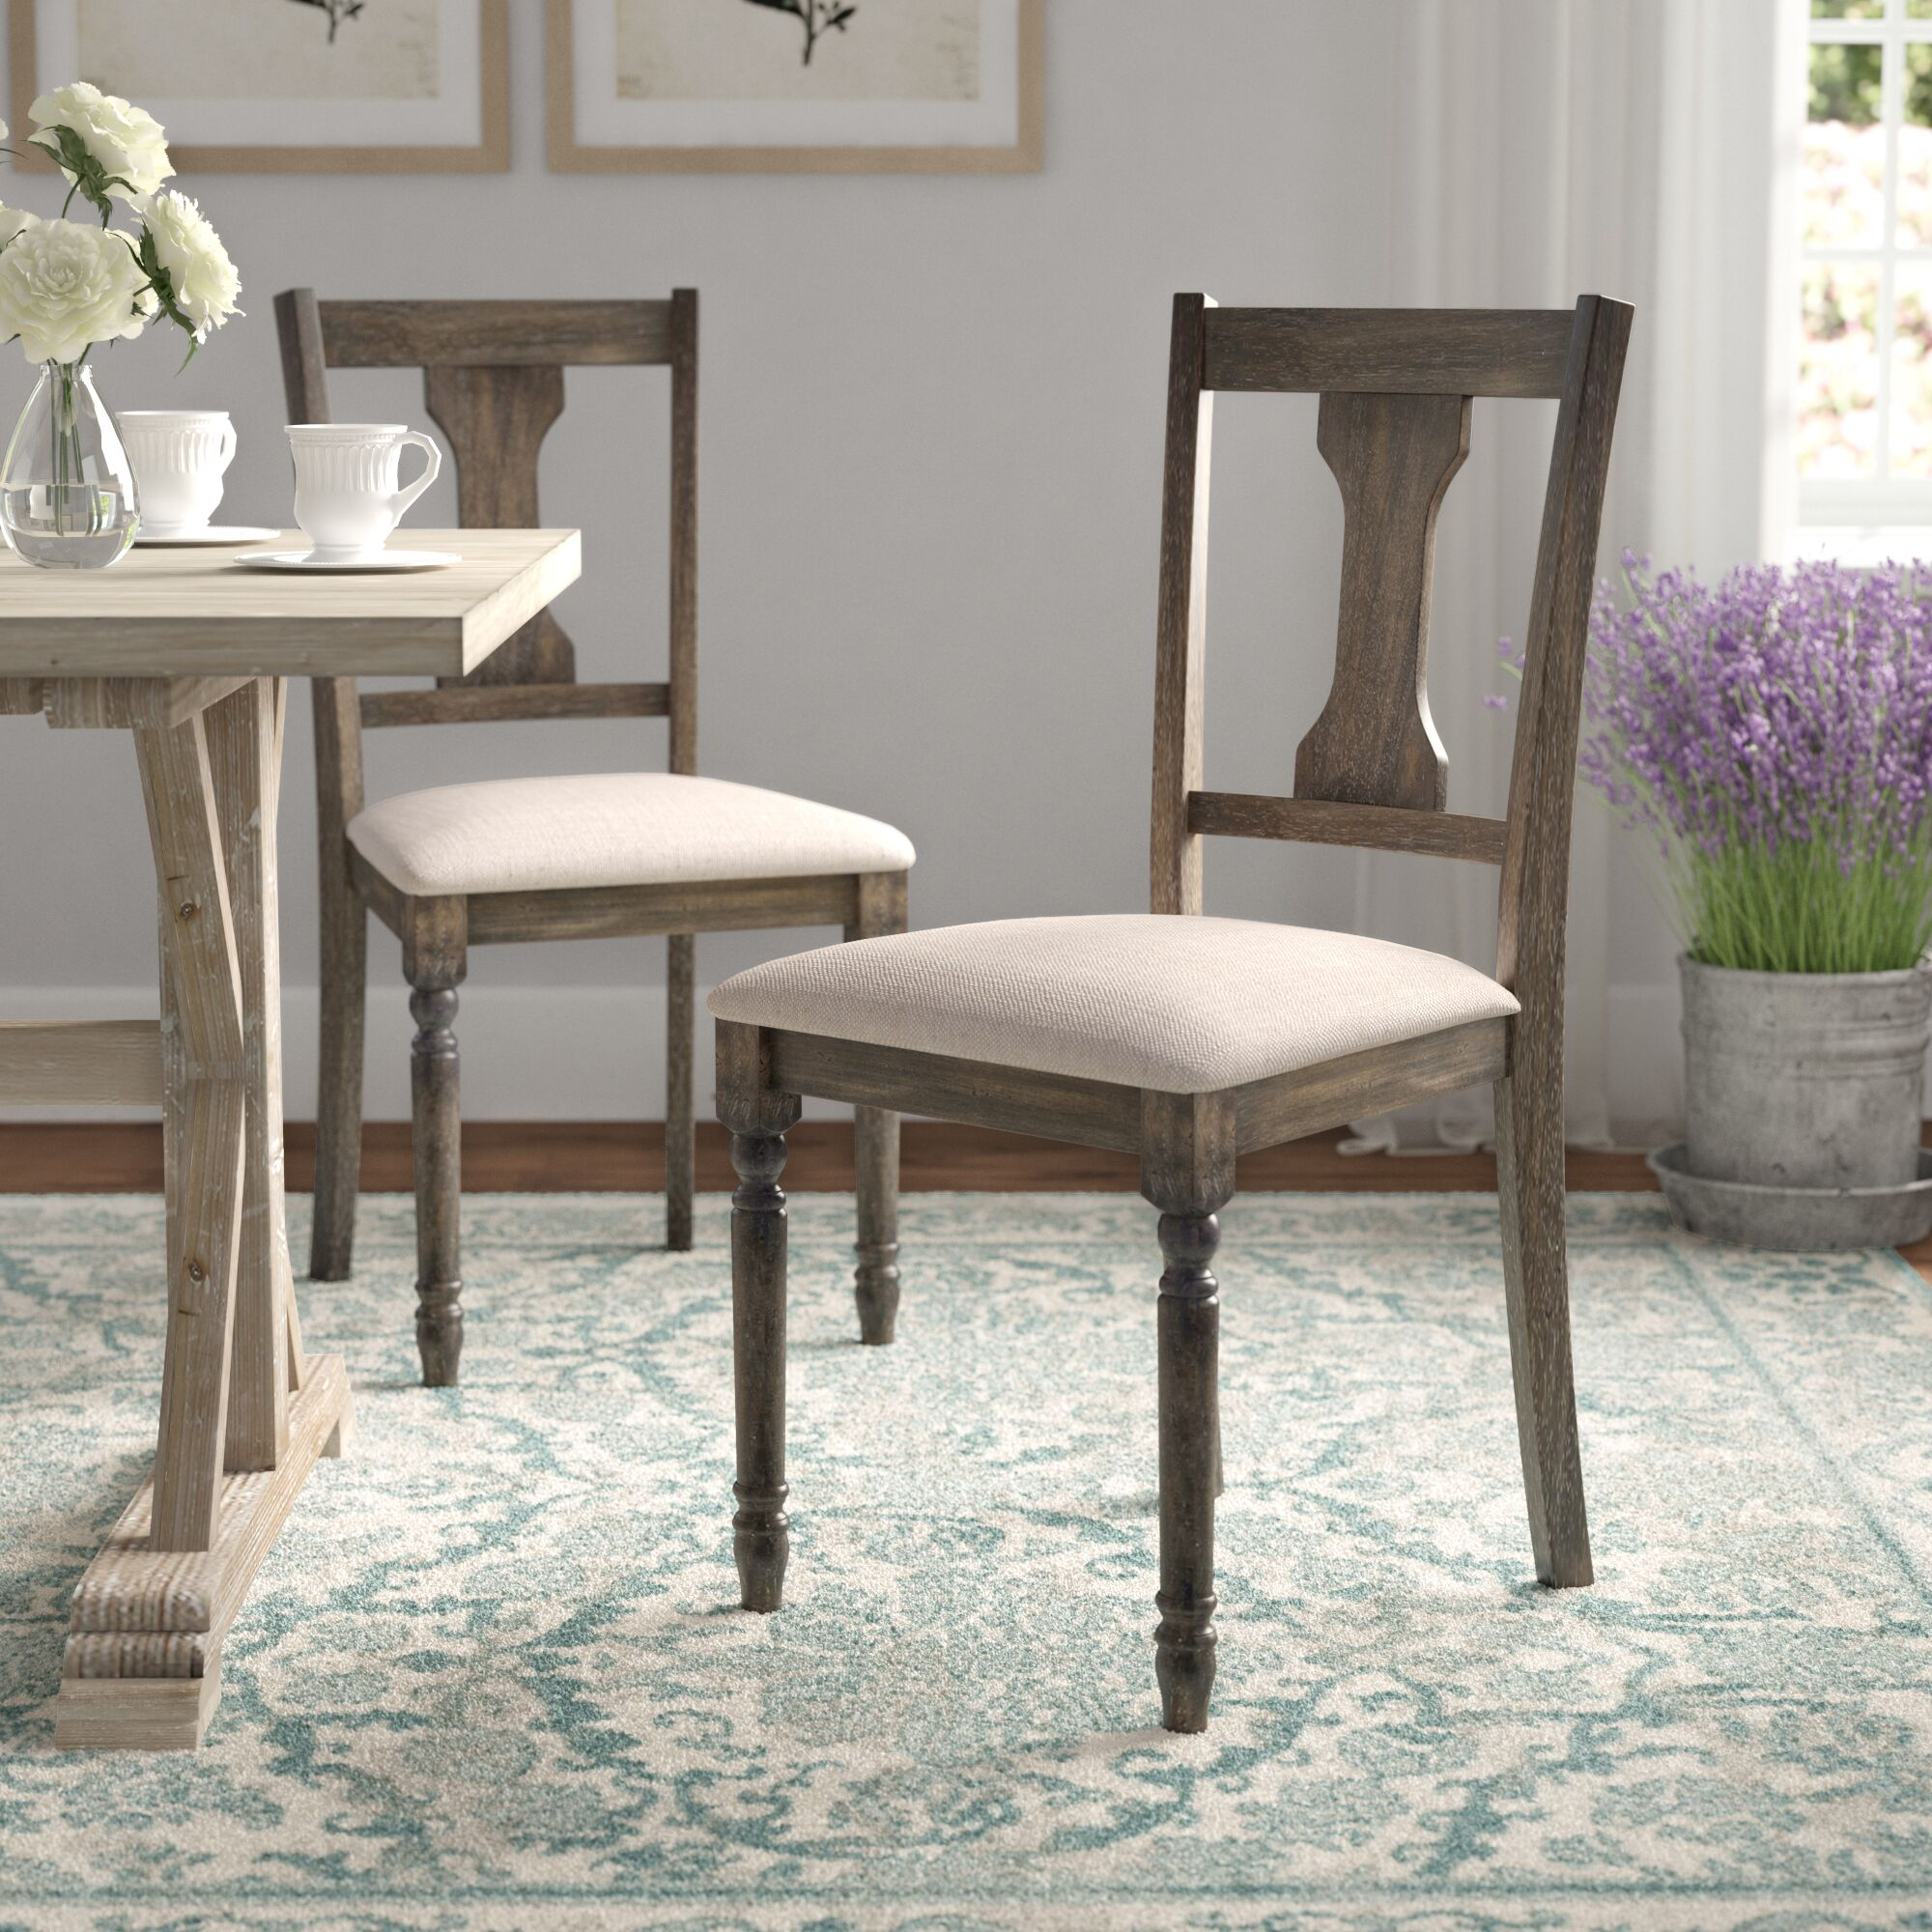 Lorient Dining Chair